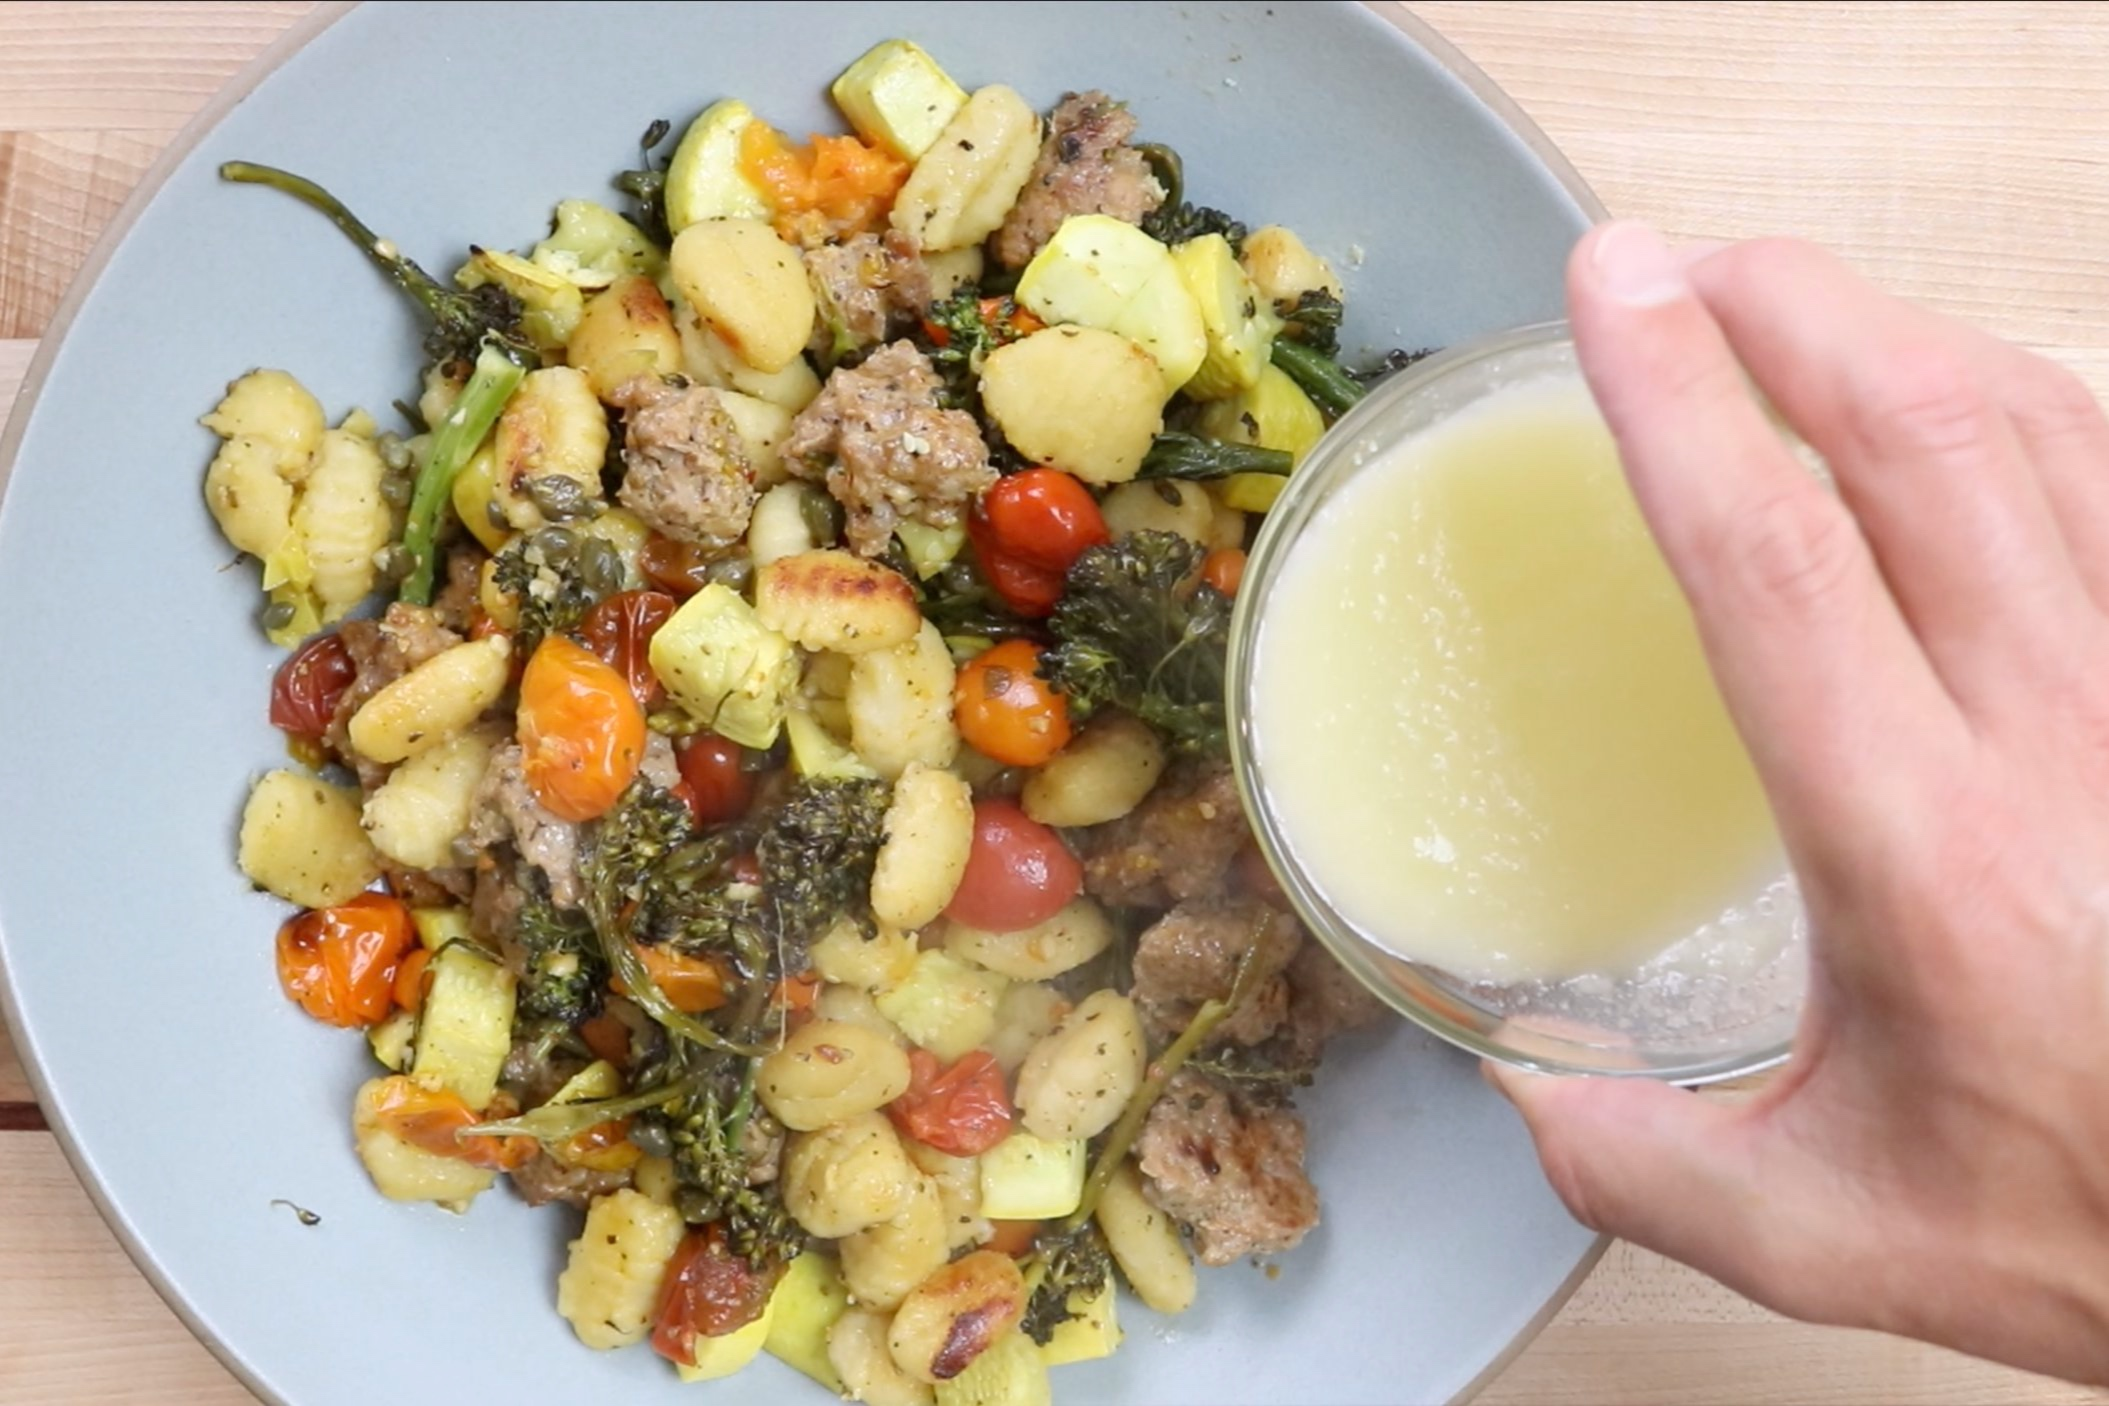 7. Add lemon juice and butter and stir with hot gnocchi and veggies. -